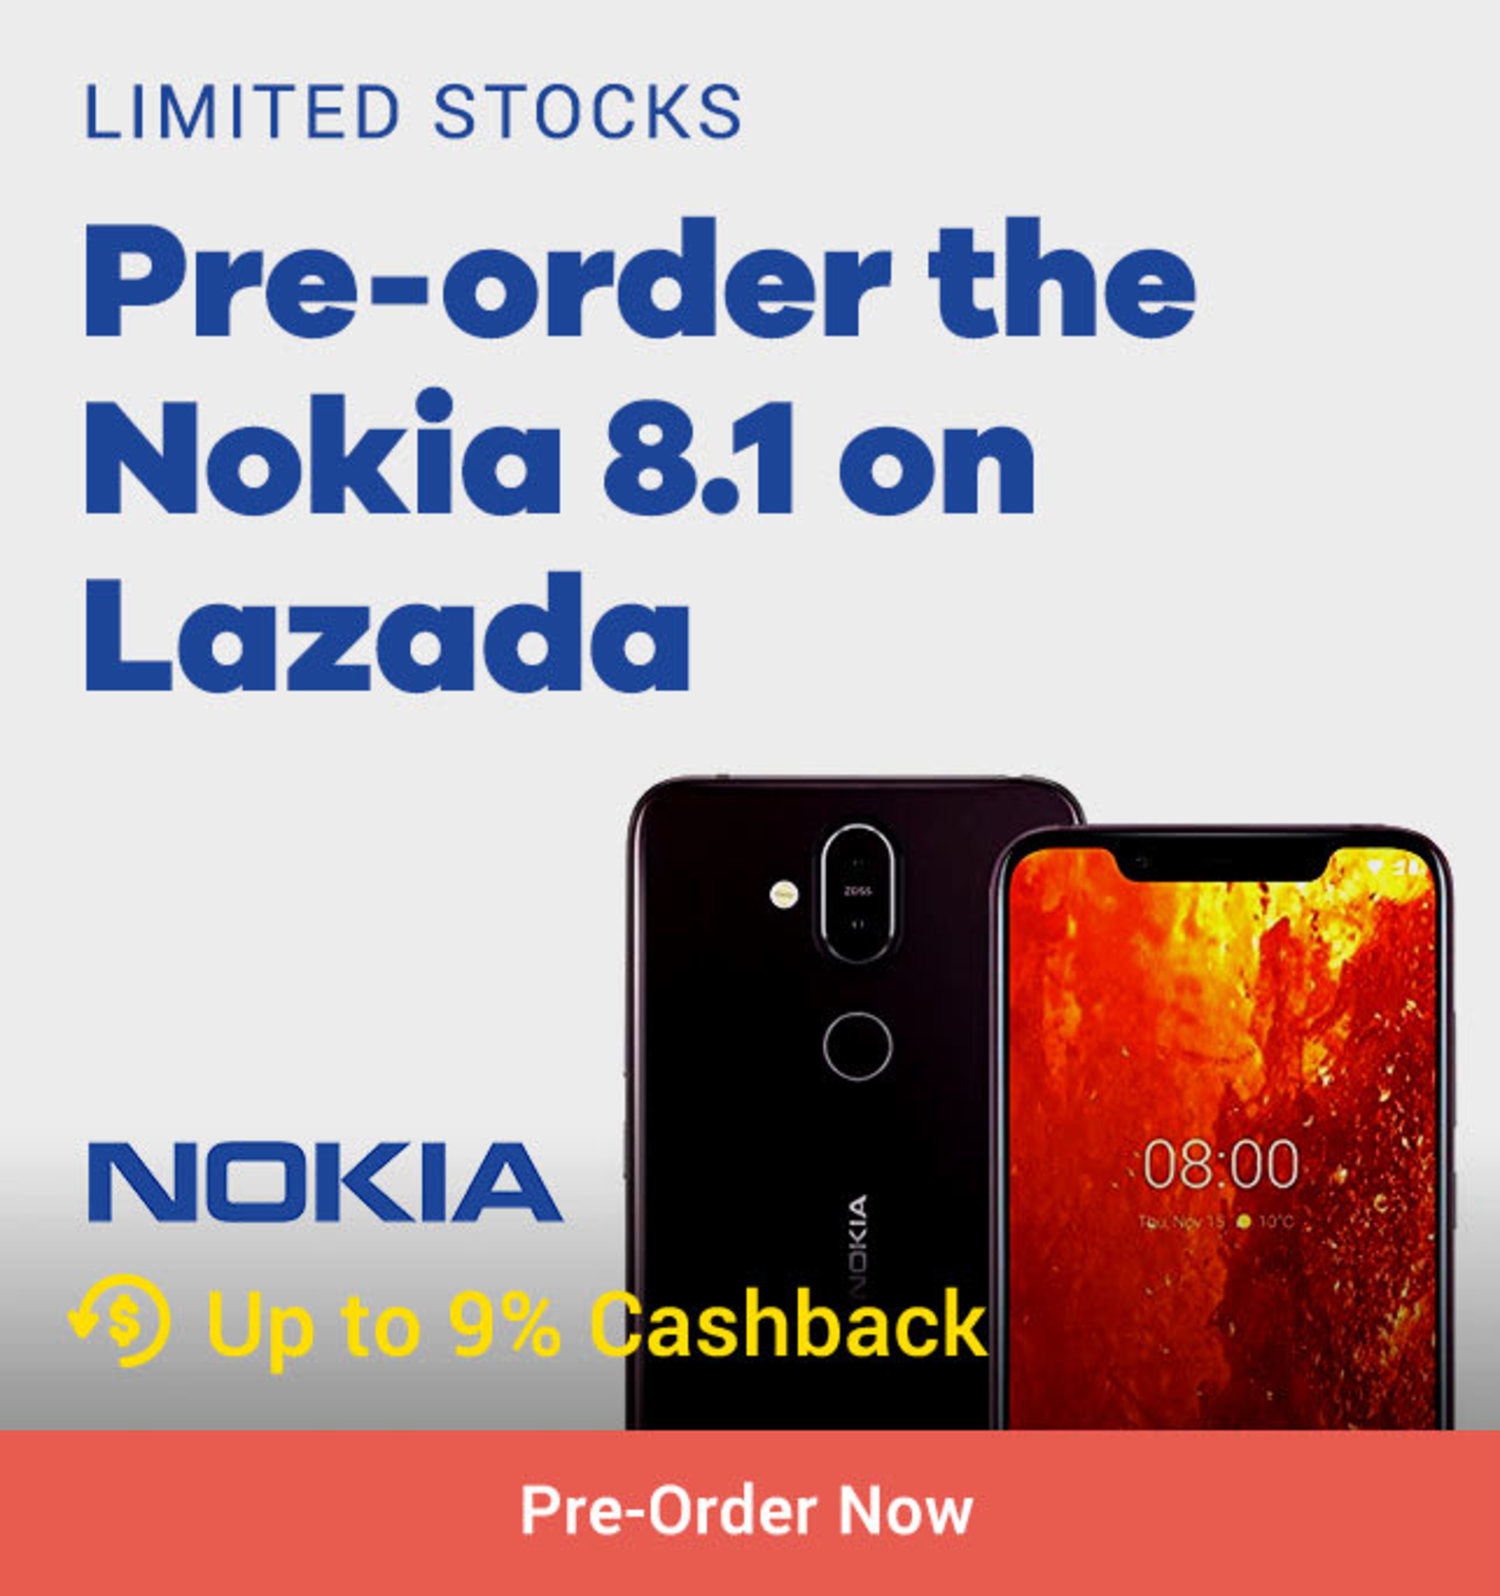 Nokia Limited Stocks Pre-order the Nokia 8.1 on Lazada + Up to 9% Cashback